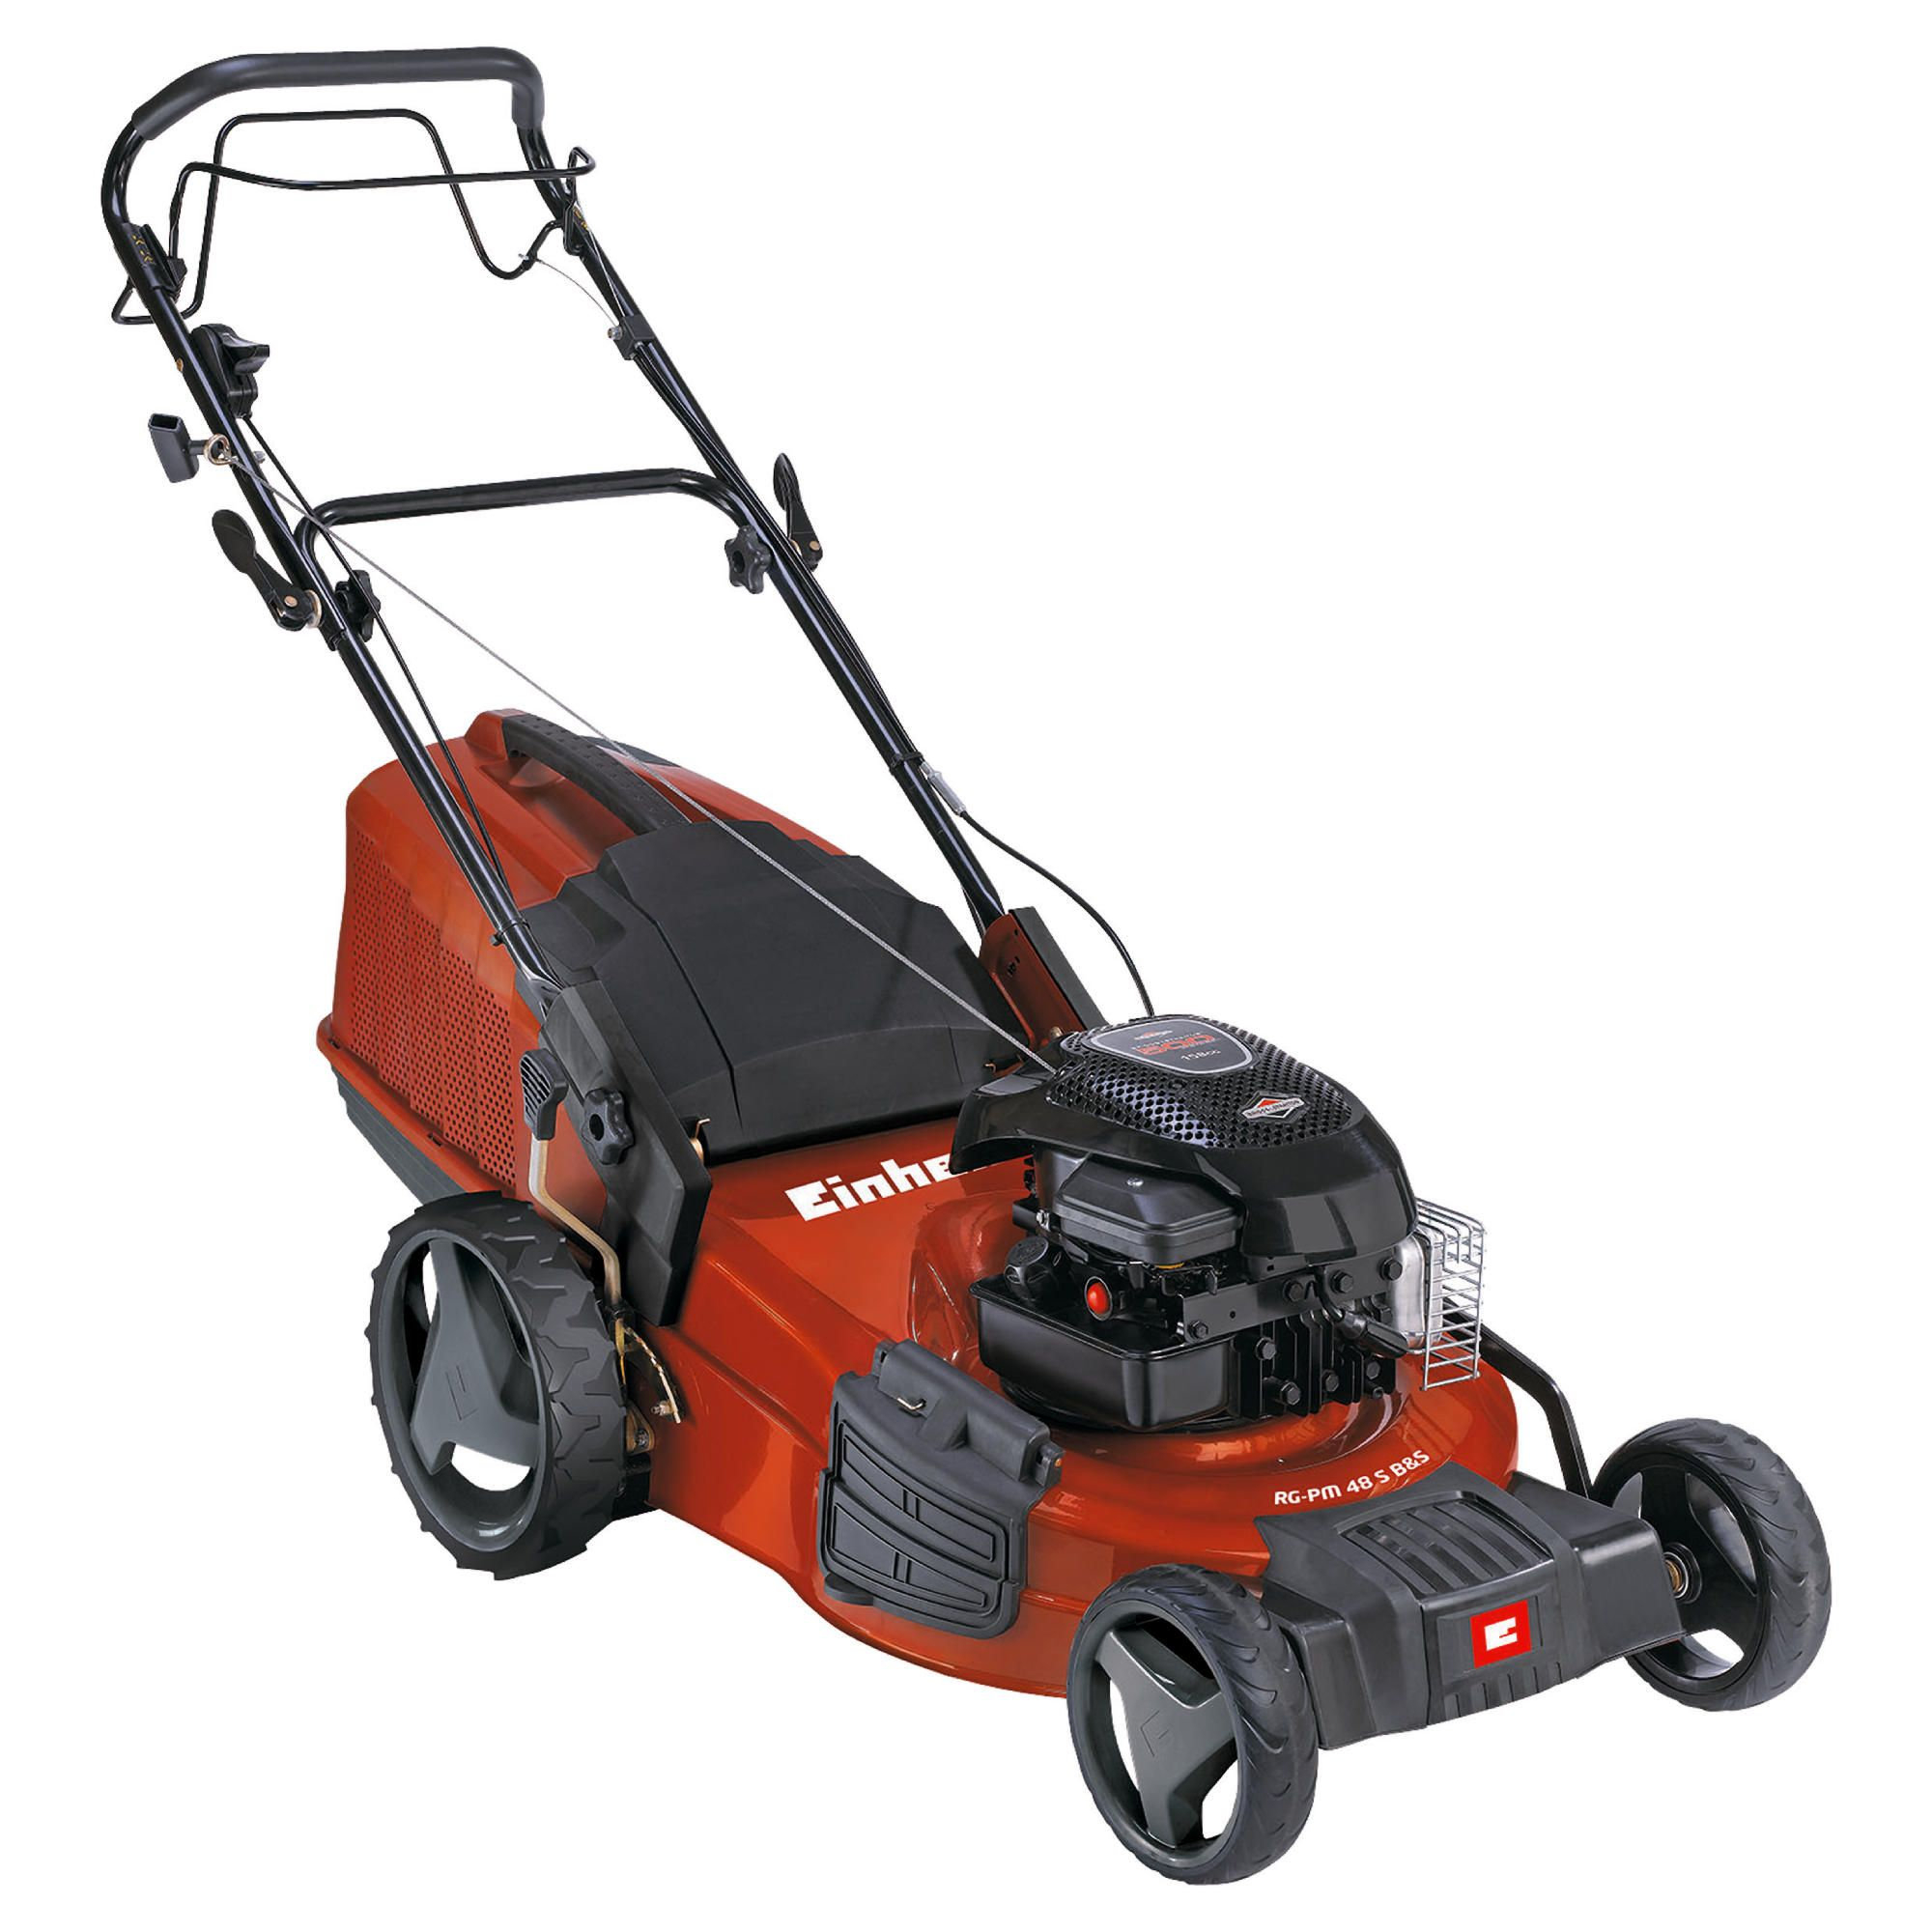 Einhell RG-PM 48s Self Propelled Lawnmower at Tesco Direct